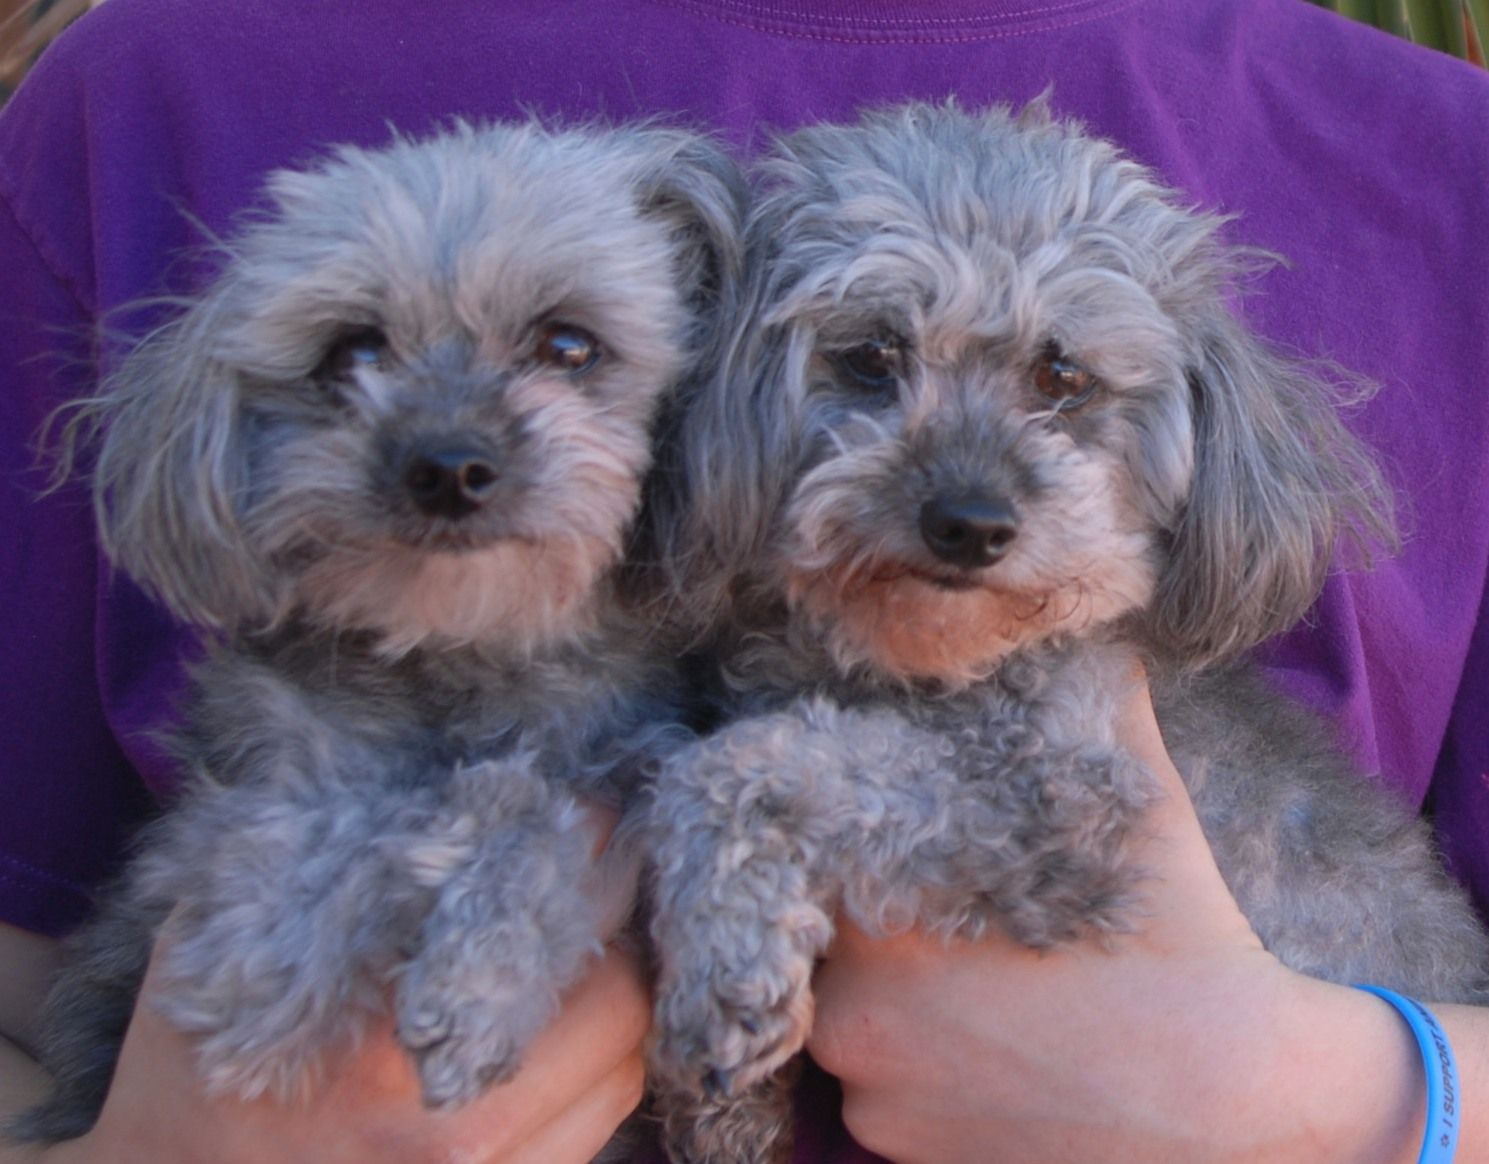 Please help find a wonderful home for Amy & Miley, a